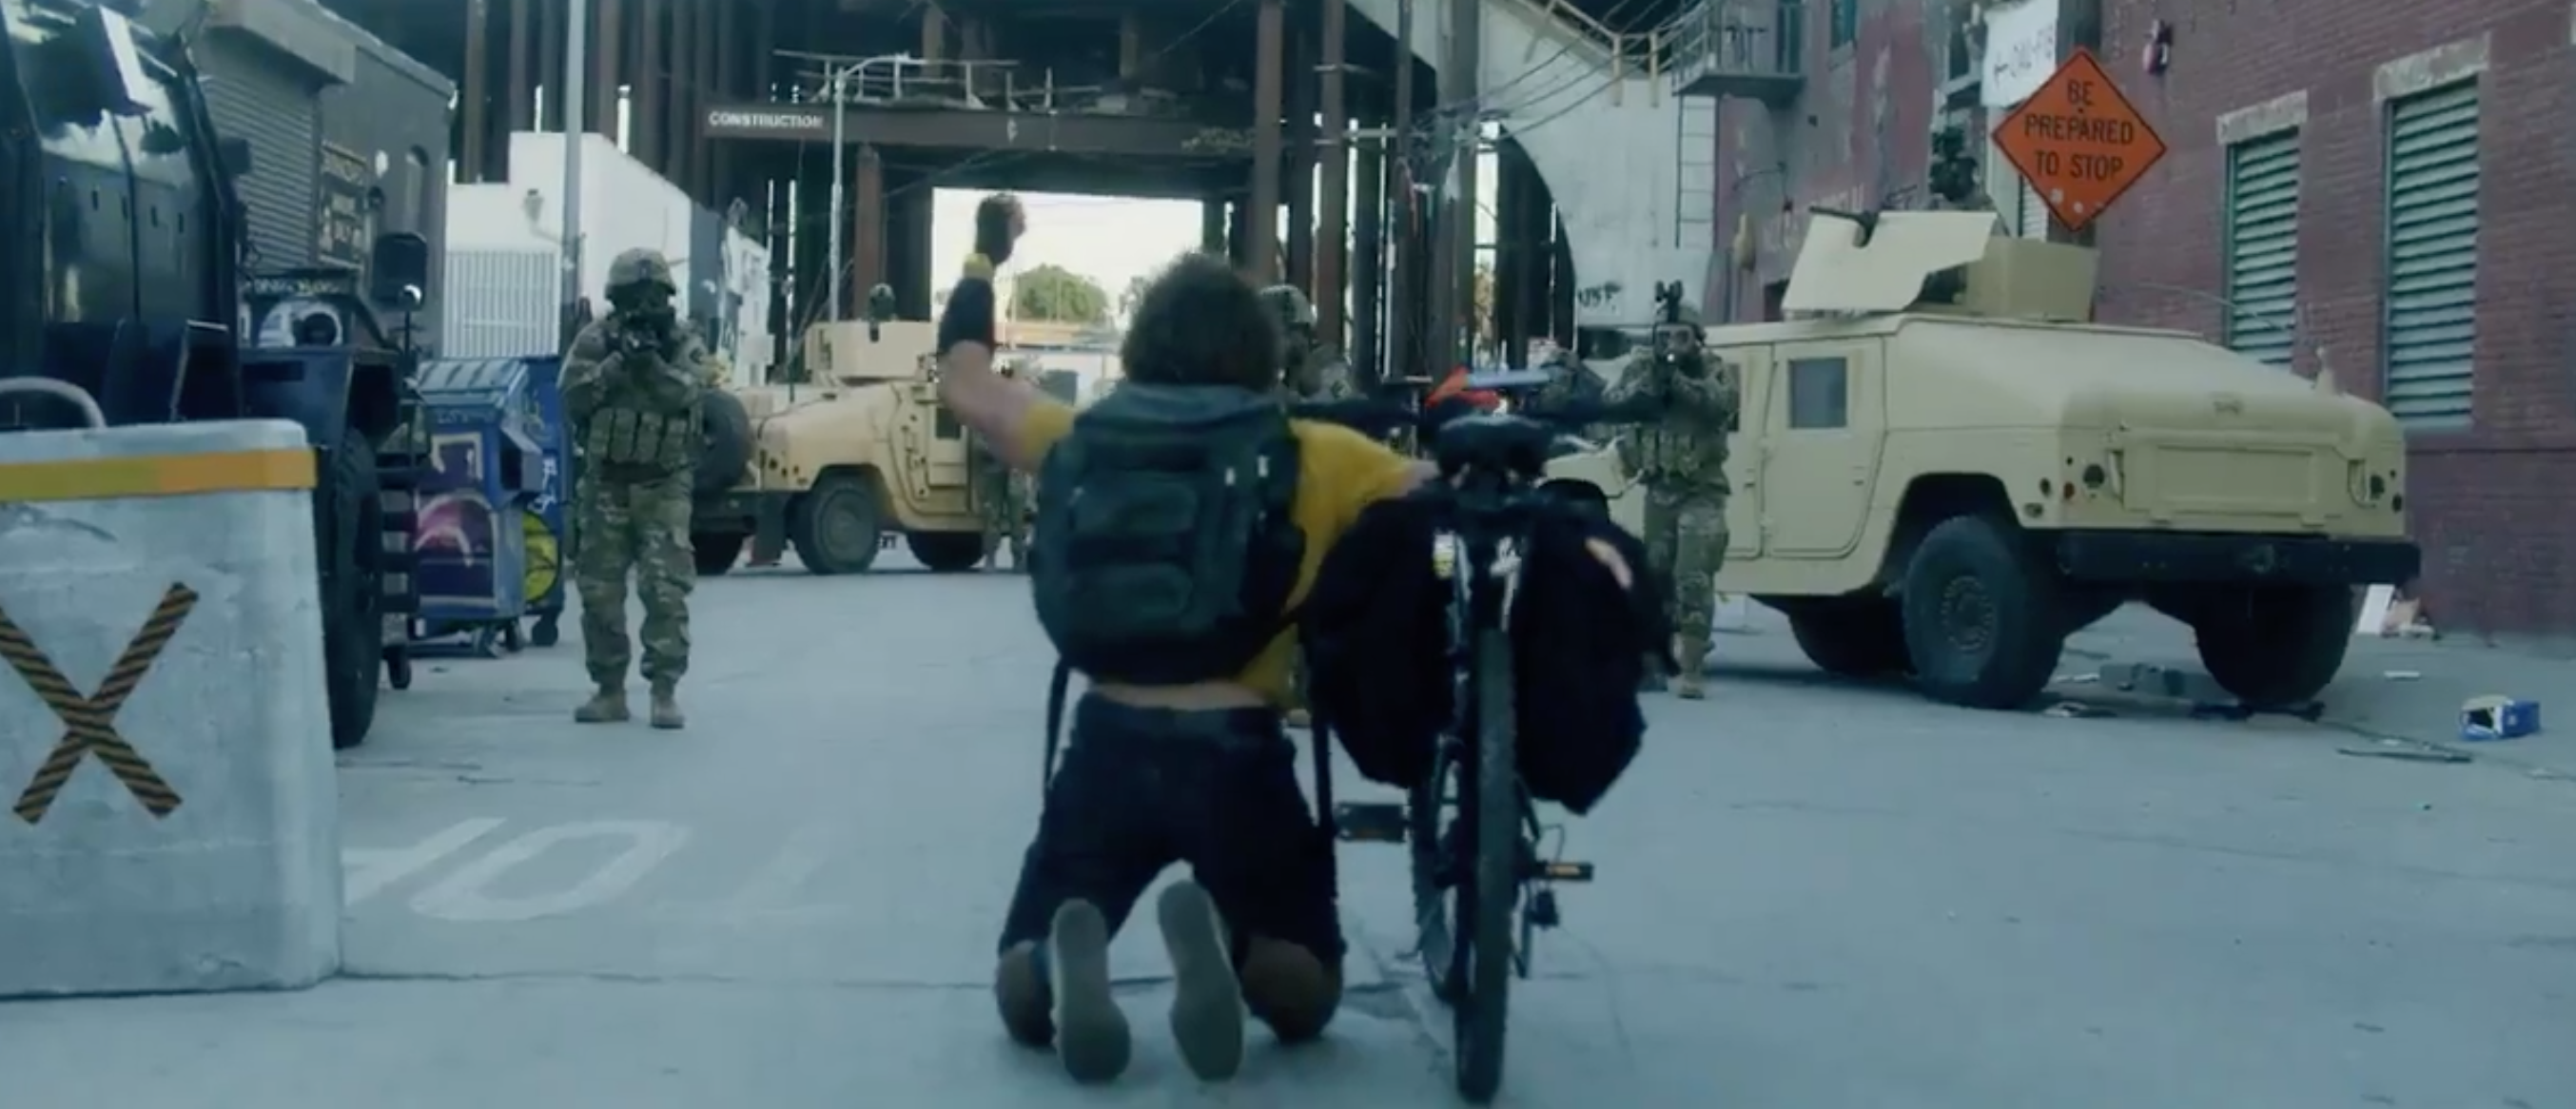 People Are Very Upset About The New Michael Bay Movie, 'Songbird'